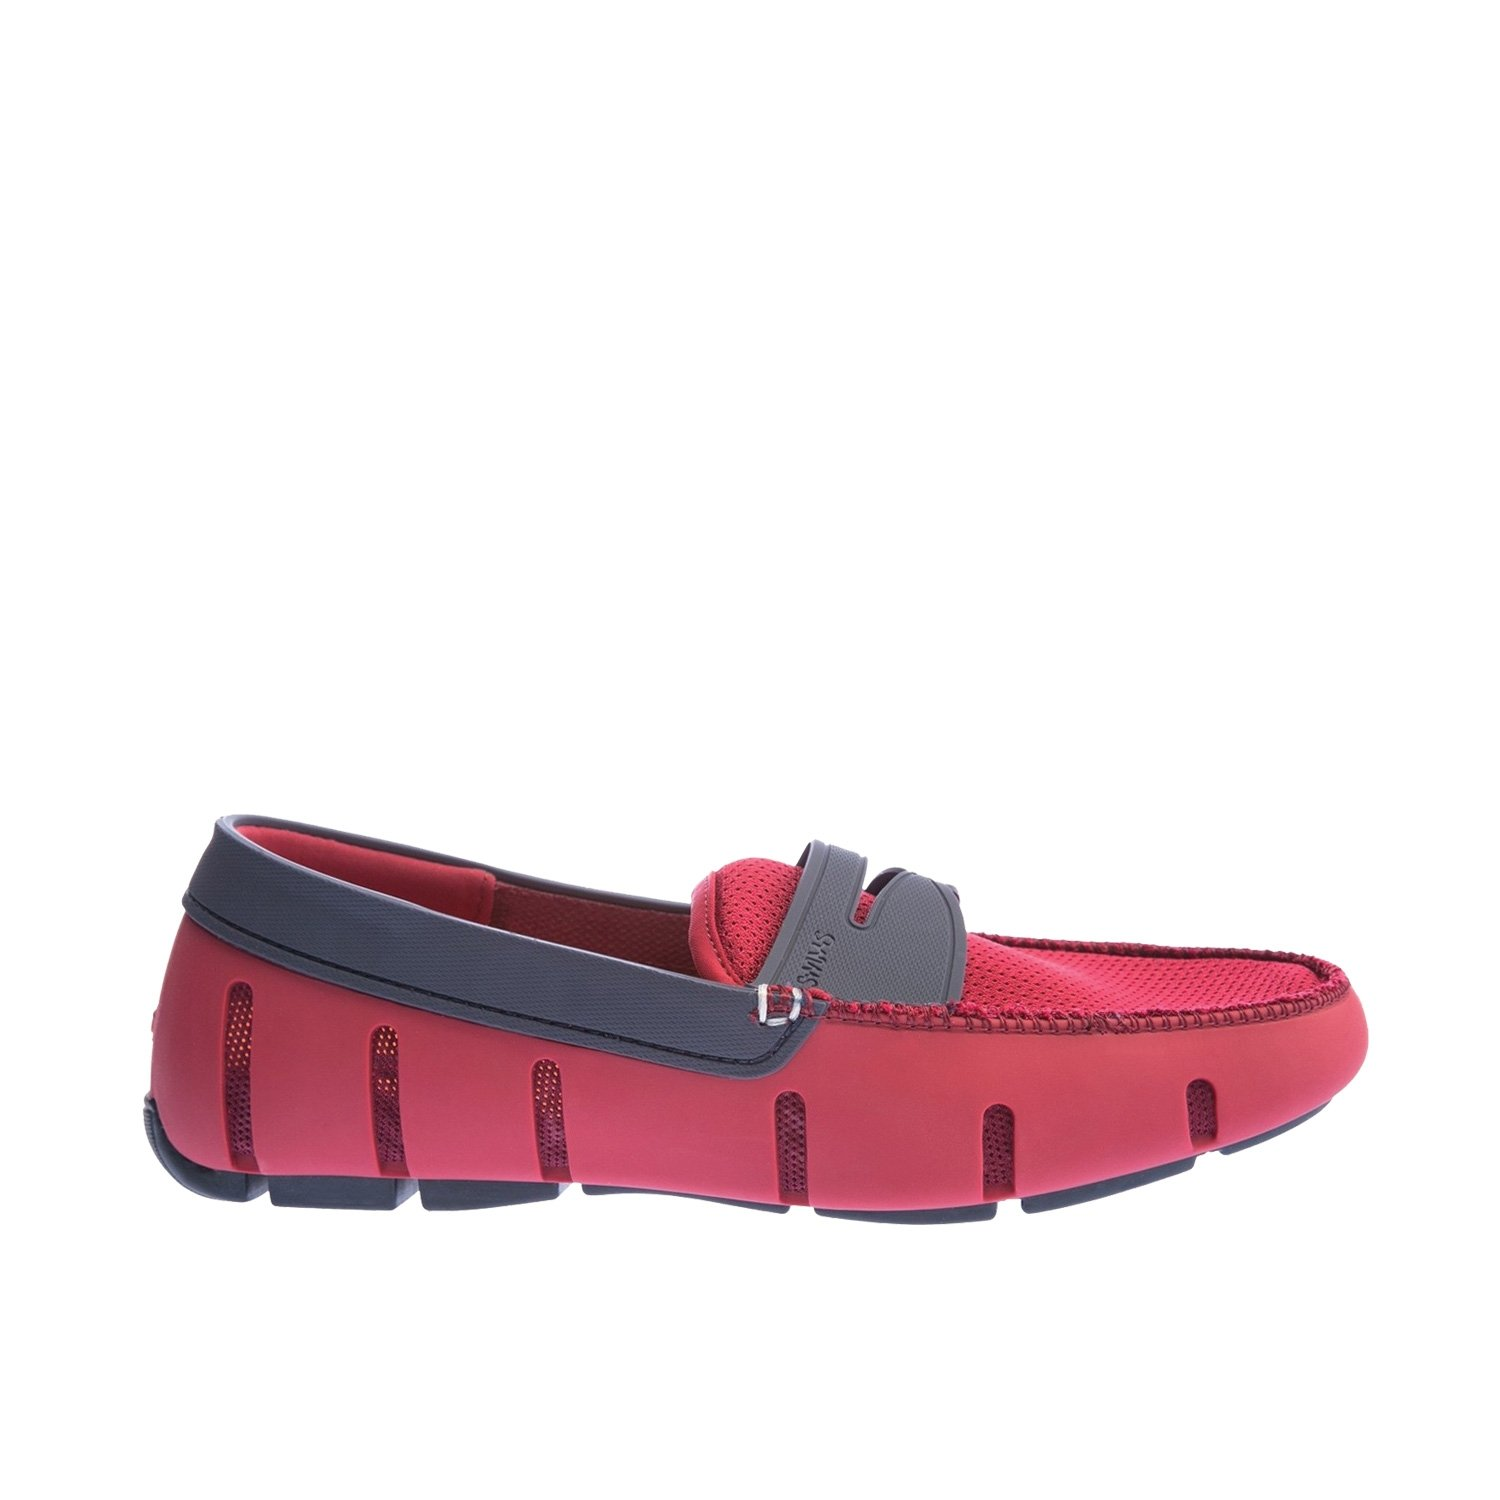 Swims Penny Loafer, Mocasines para Hombre Rojo (Deep Red/Navy 593)